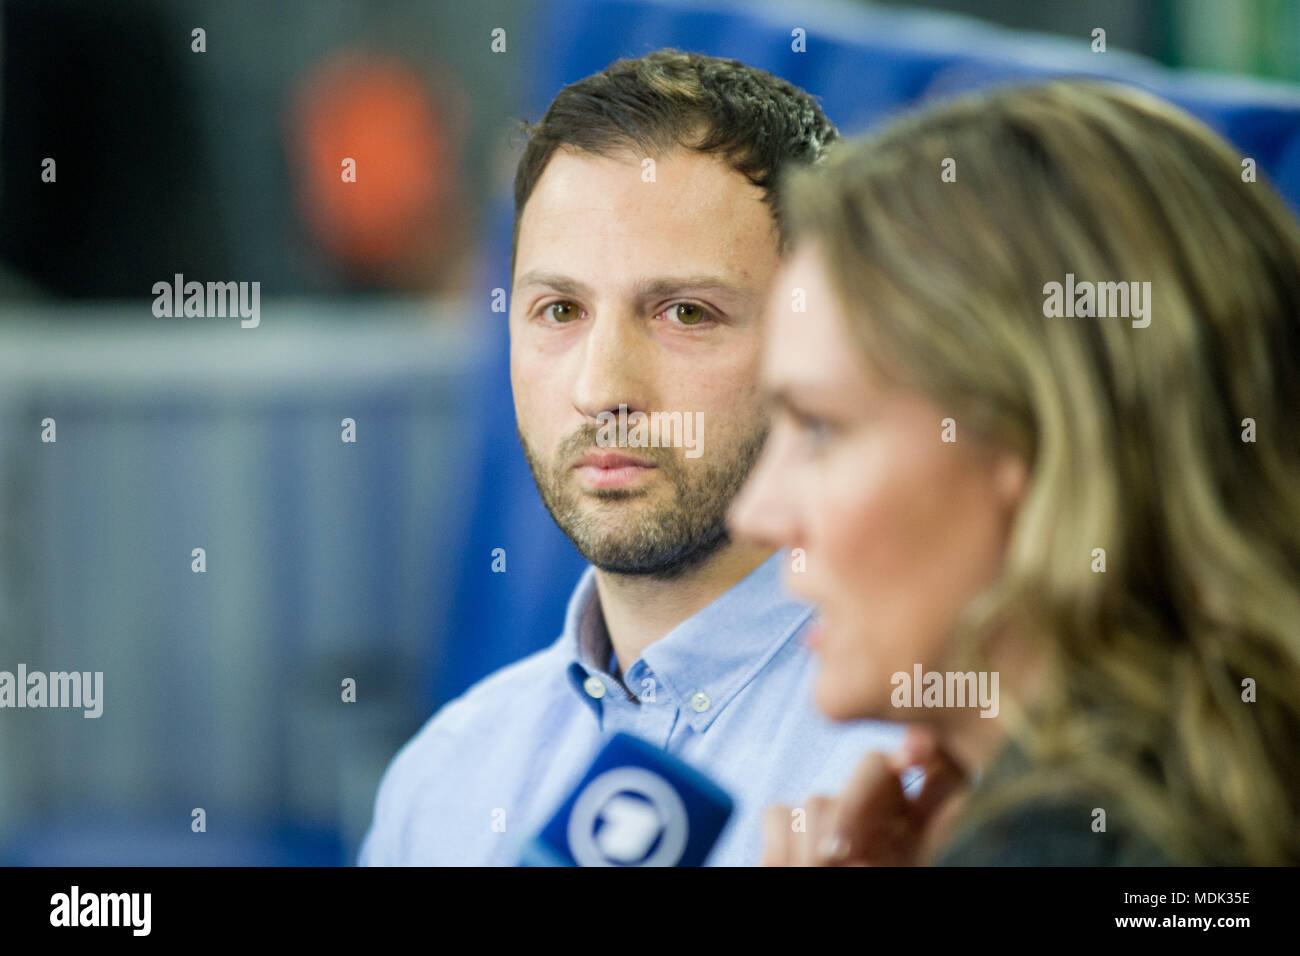 Gelsenkirchen, Deutschland. 19th Apr, 2018. Domenico TEDESCO (left, coach, GE) in an interview, TV, television, half-length portrait, football, DFB Pokal, semi-final, FC Schalke 04 (GE) - Frankfurt (F) 0: 1 on 18.04.2018 in Gelsenkirchen/Germany. | usage worldwide Credit: dpa/Alamy Live News - Stock Image